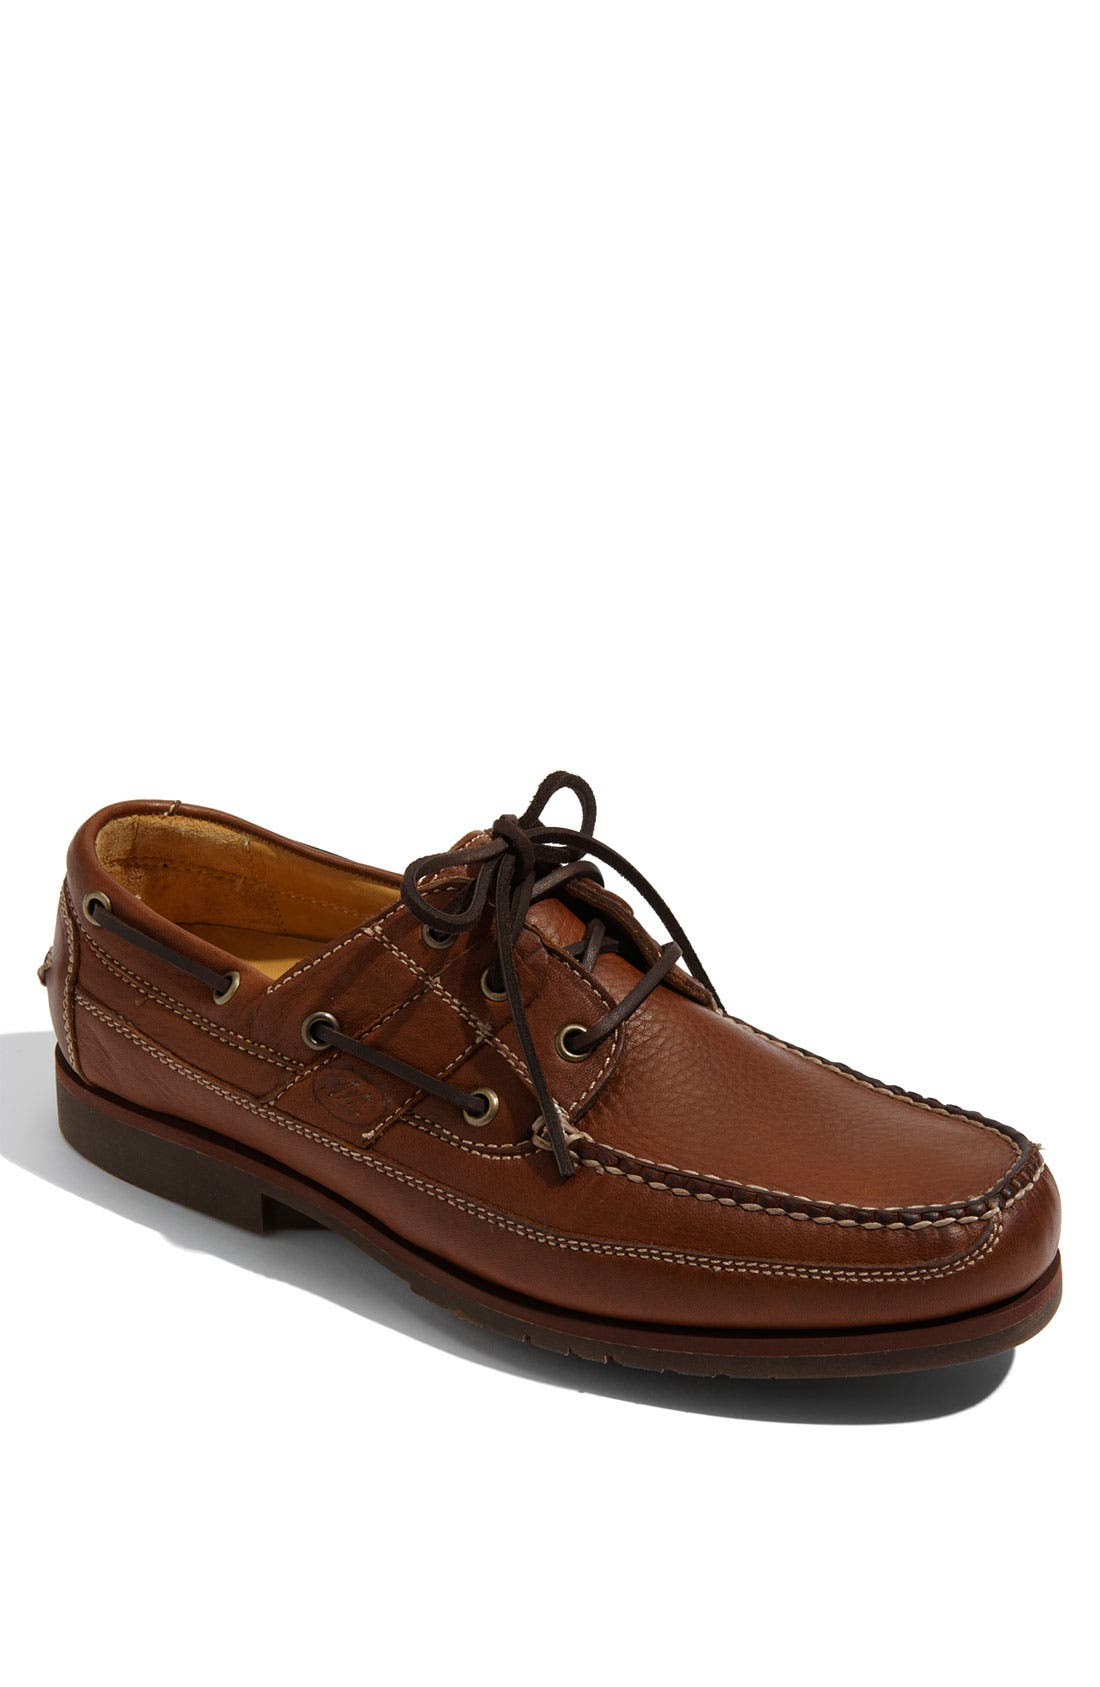 Neil M 'Bridgeport' Boat Shoe (Online Only)